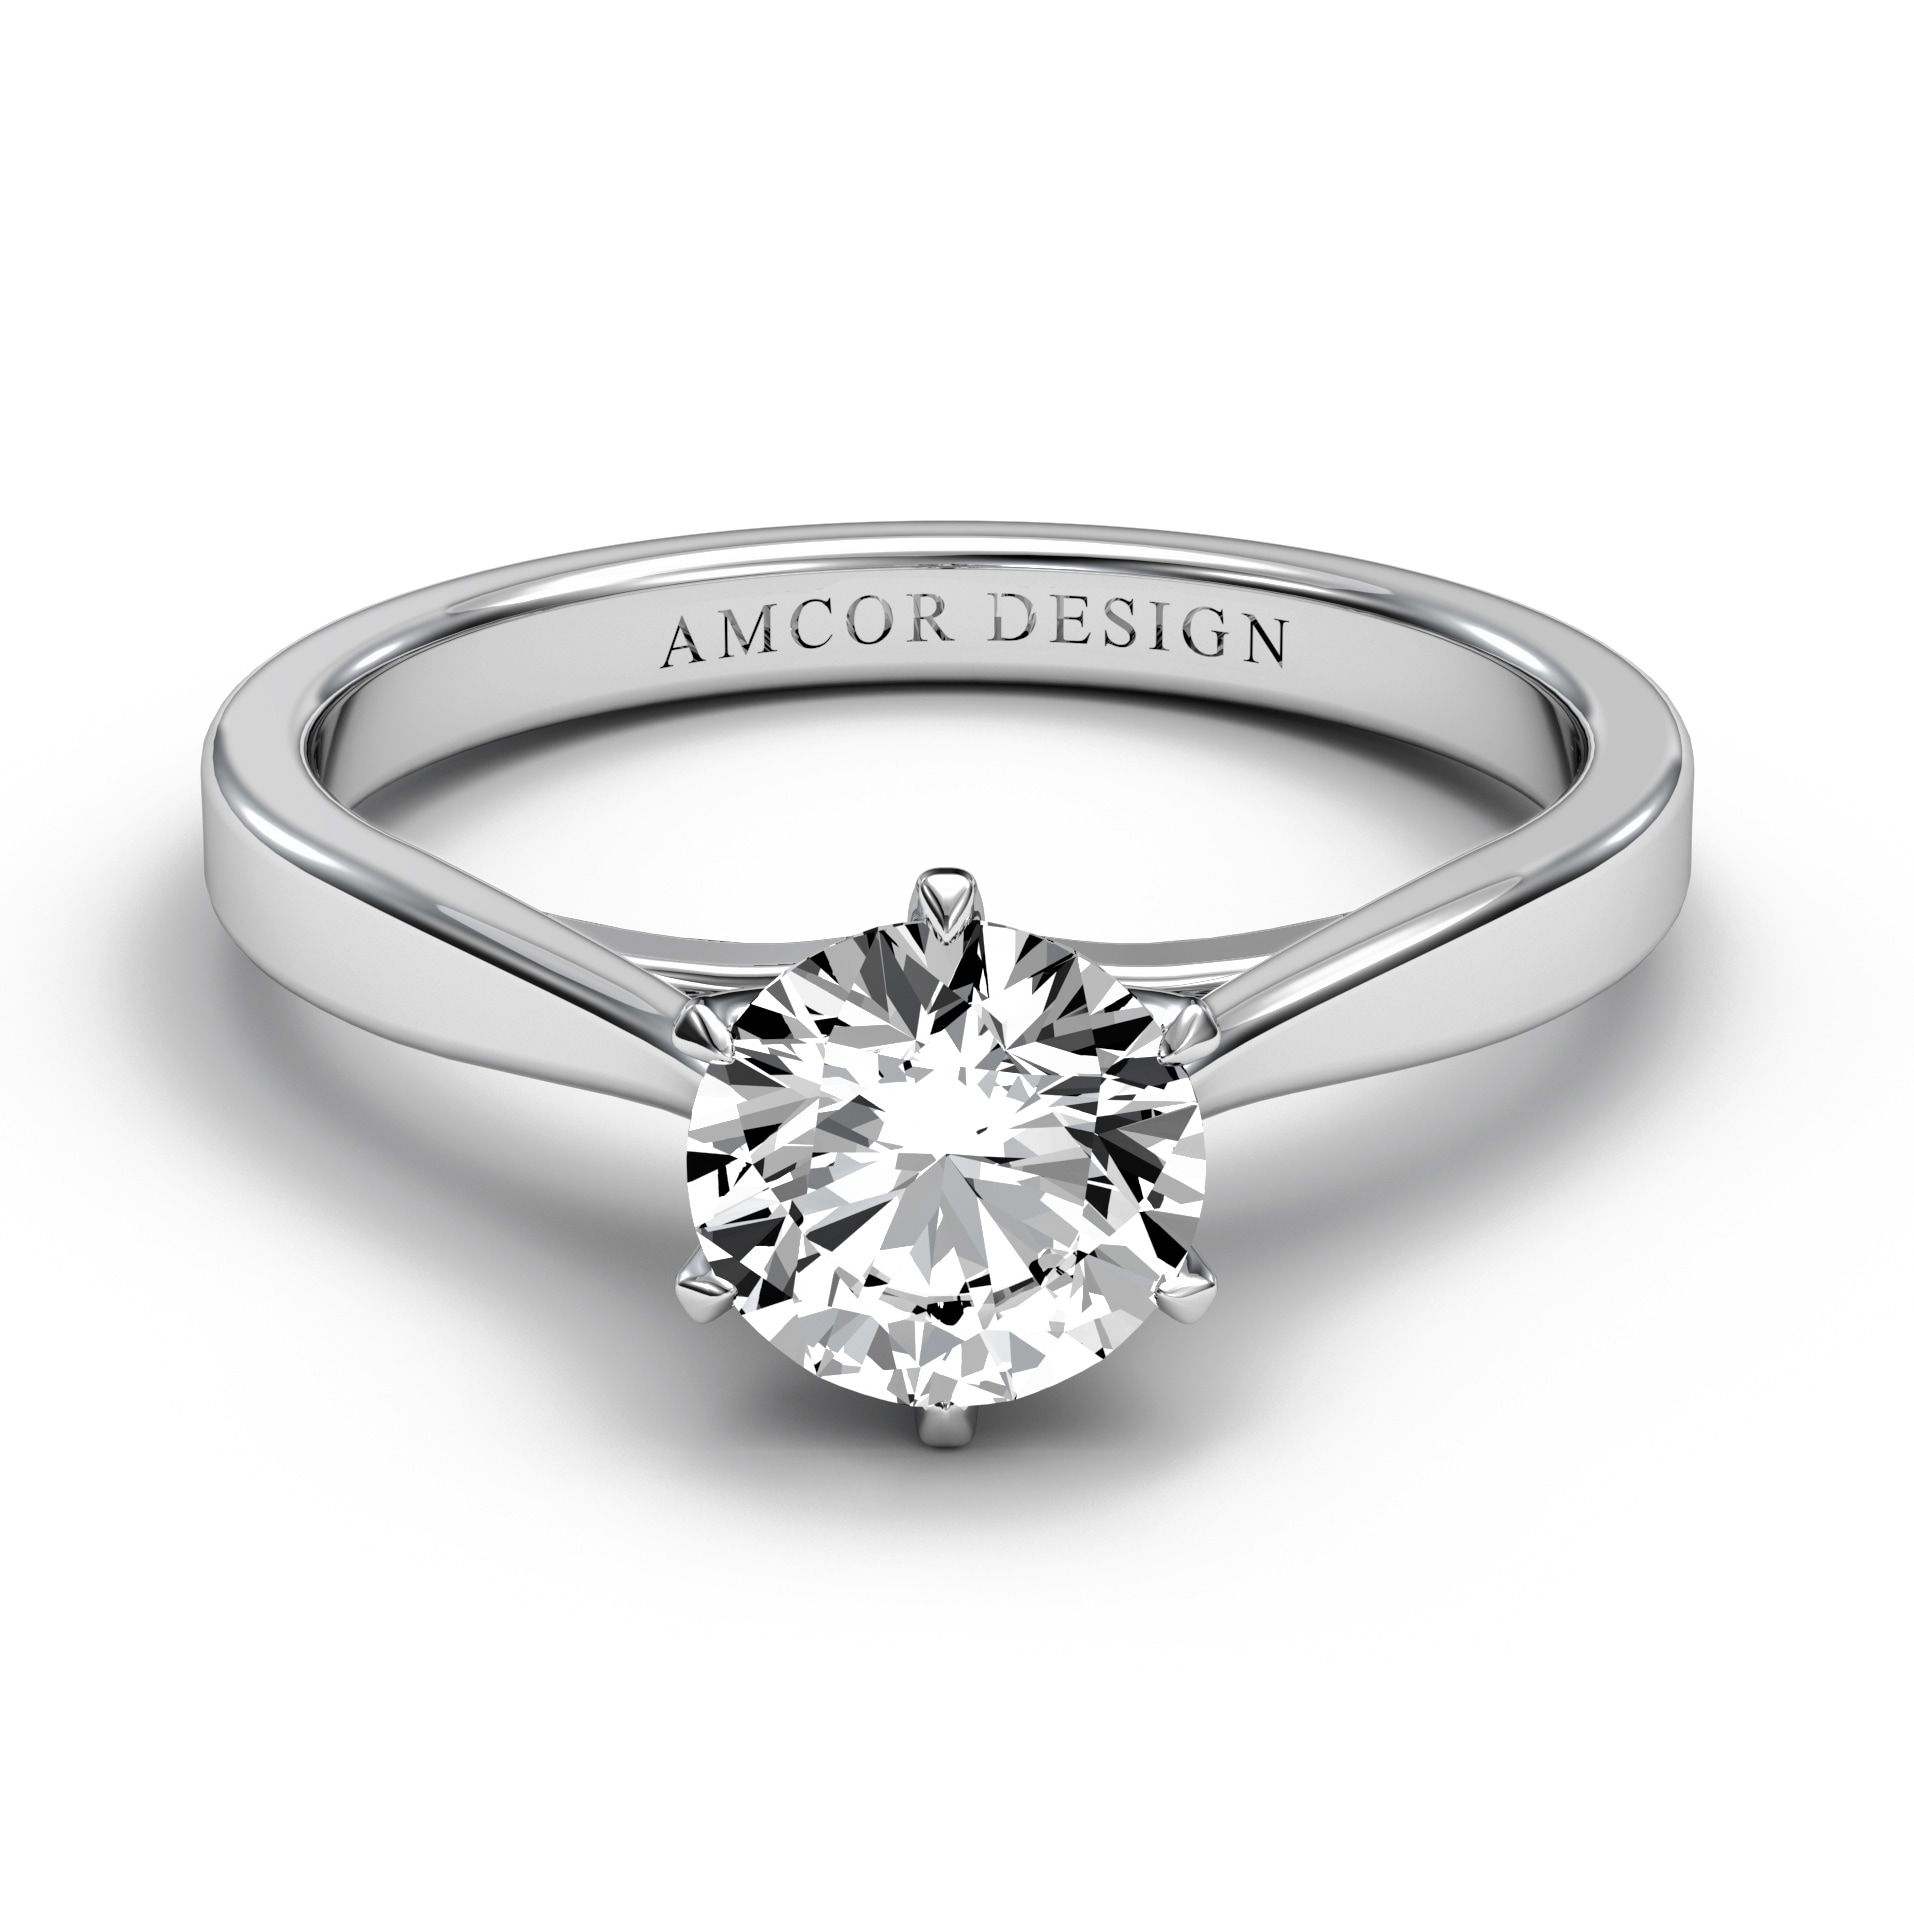 Shop 14kt Gold 1 2 Carat Diamond Engagement Ring Round 6 Prong Solitaire On Sale Overstock 29813540